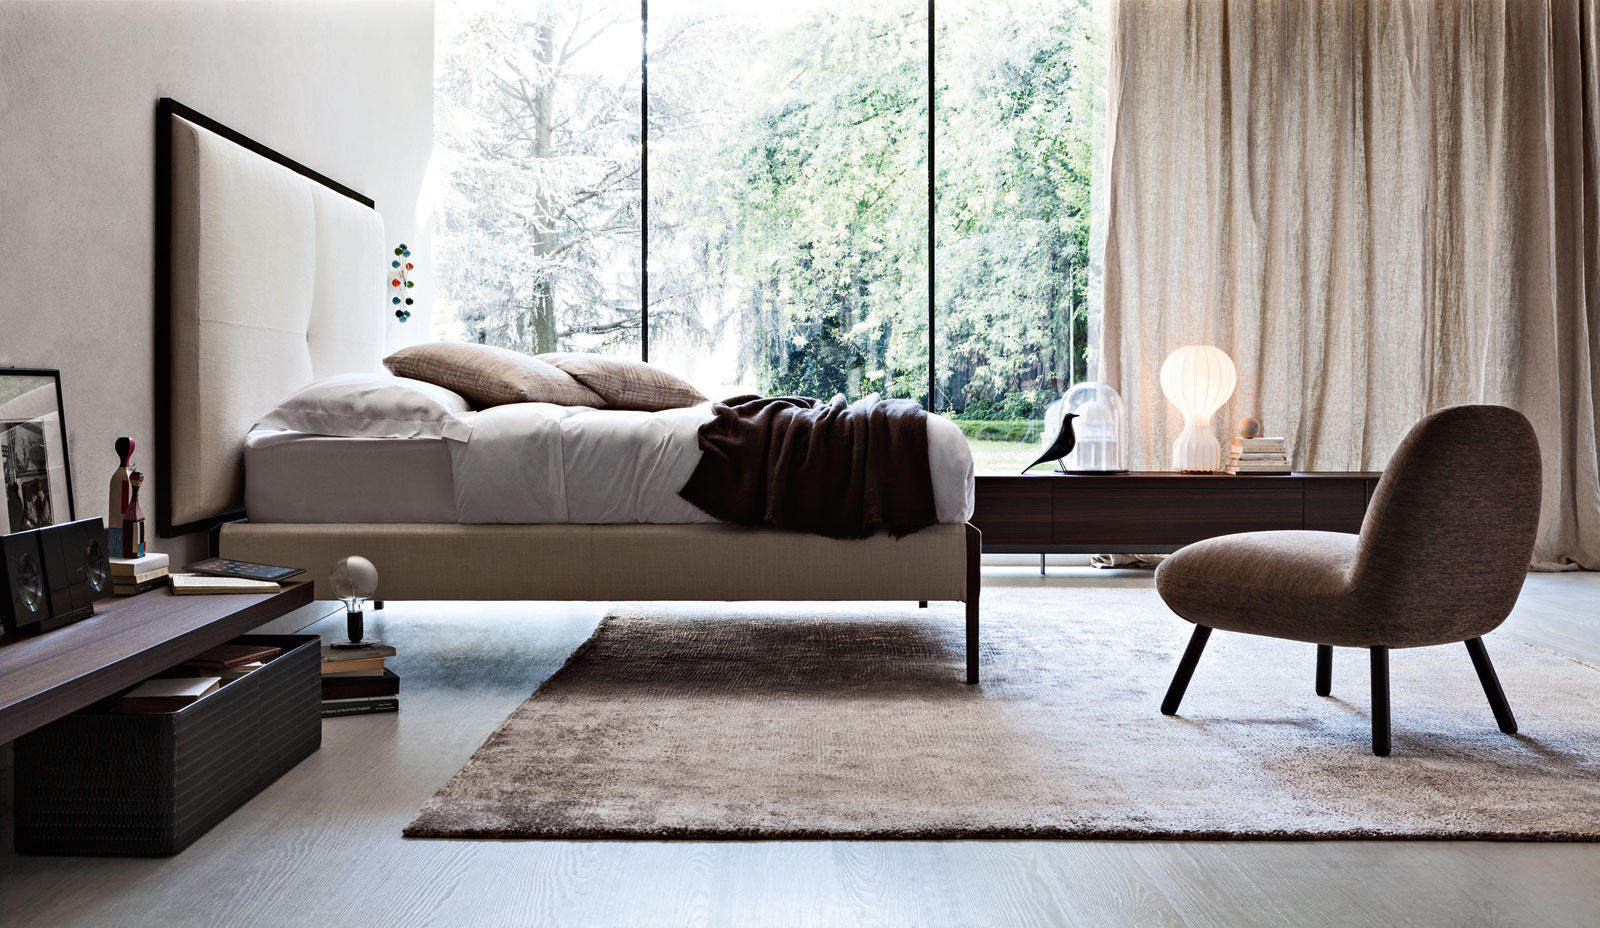 SWEETDREAMS - Beds from Molteni & C | Architonic